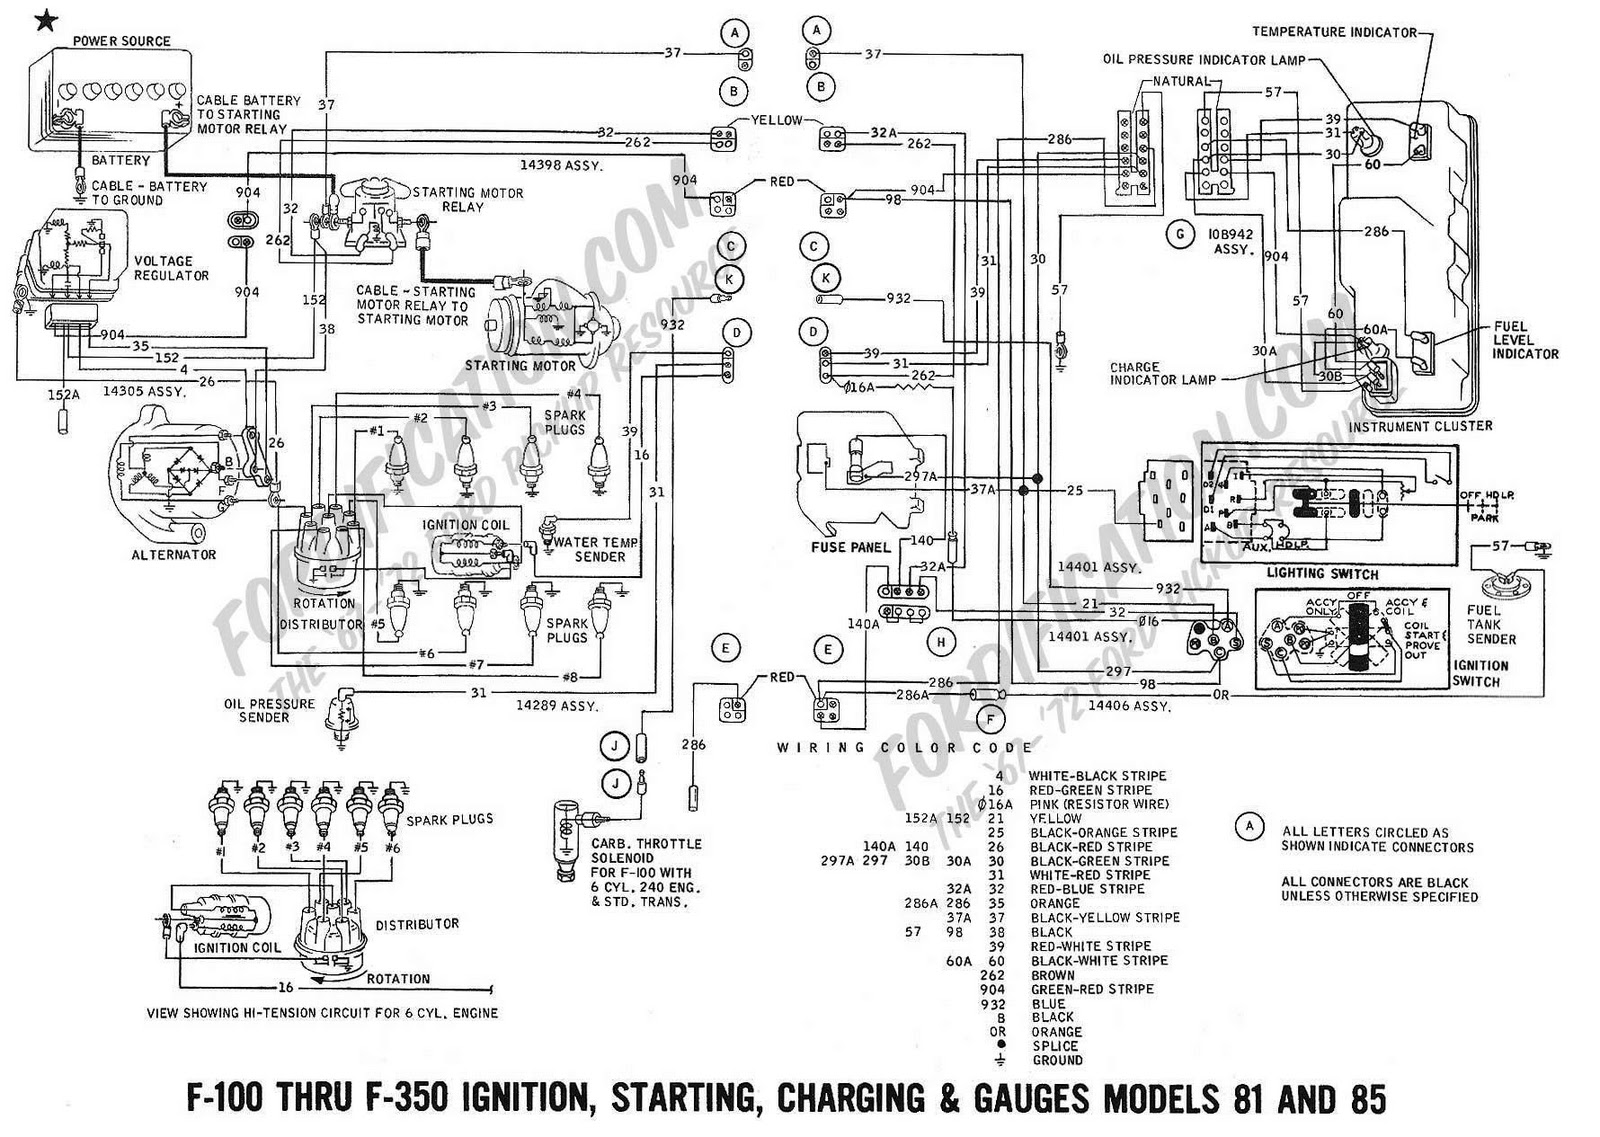 1963 Ford Econoline Wiring Diagram Data 2000 Super Duty Fuse 1976 Schema Online